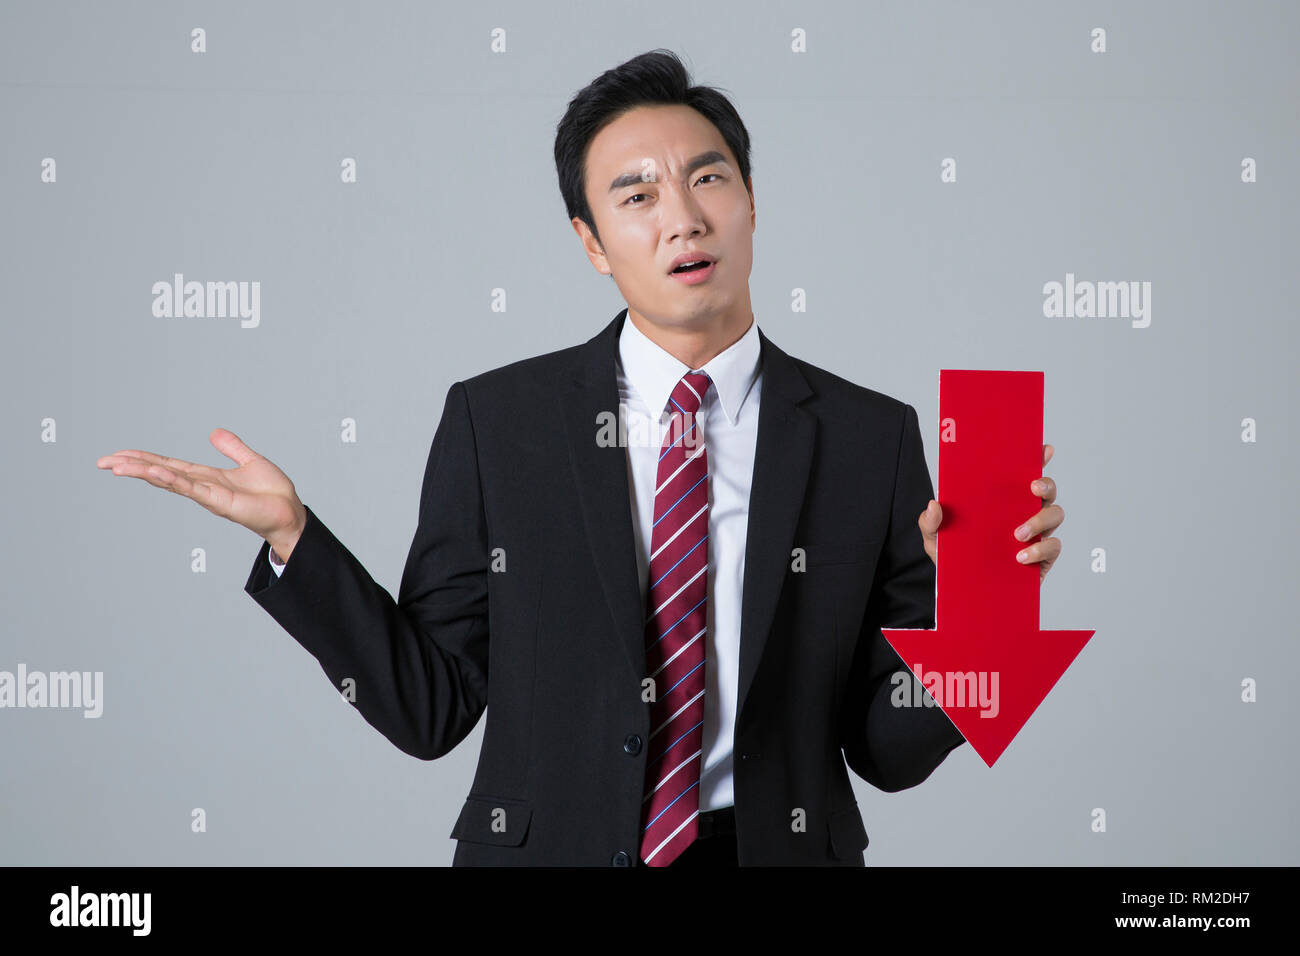 Young businessman concept photo. 026 - Stock Image